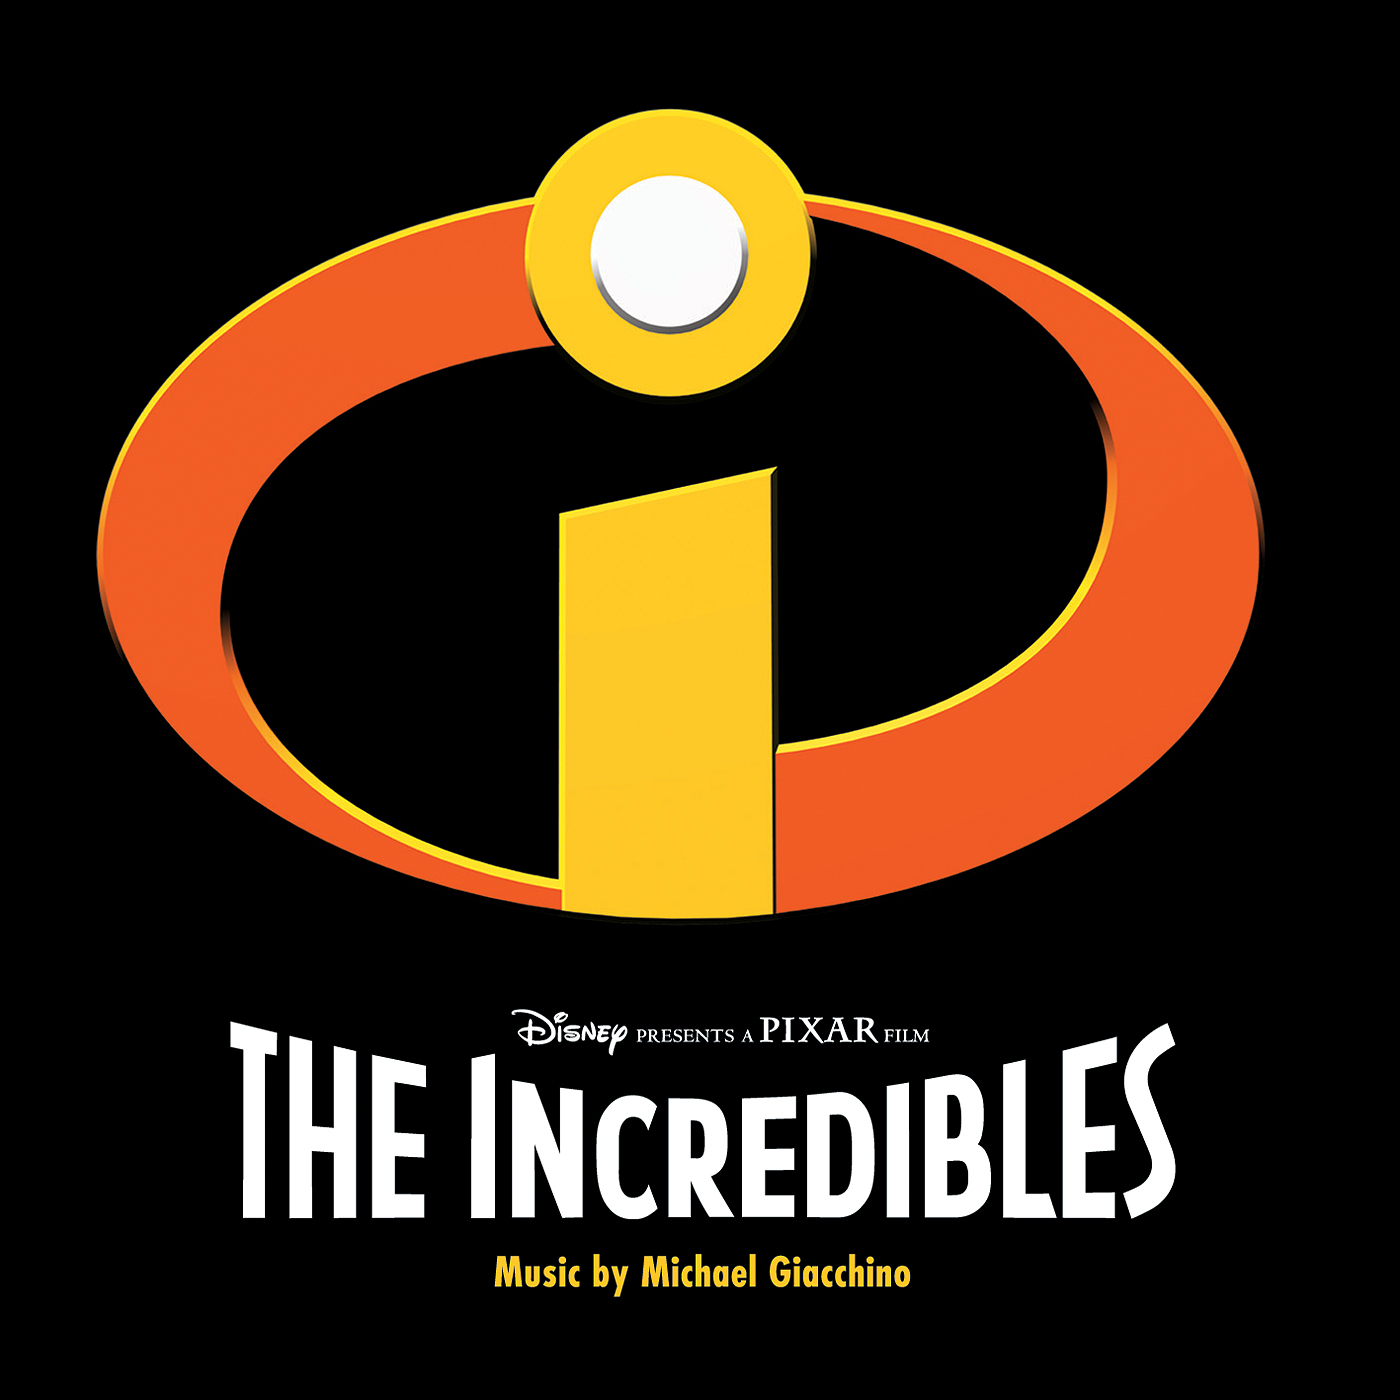 File:TheIncredibles Soundtrack.jpg